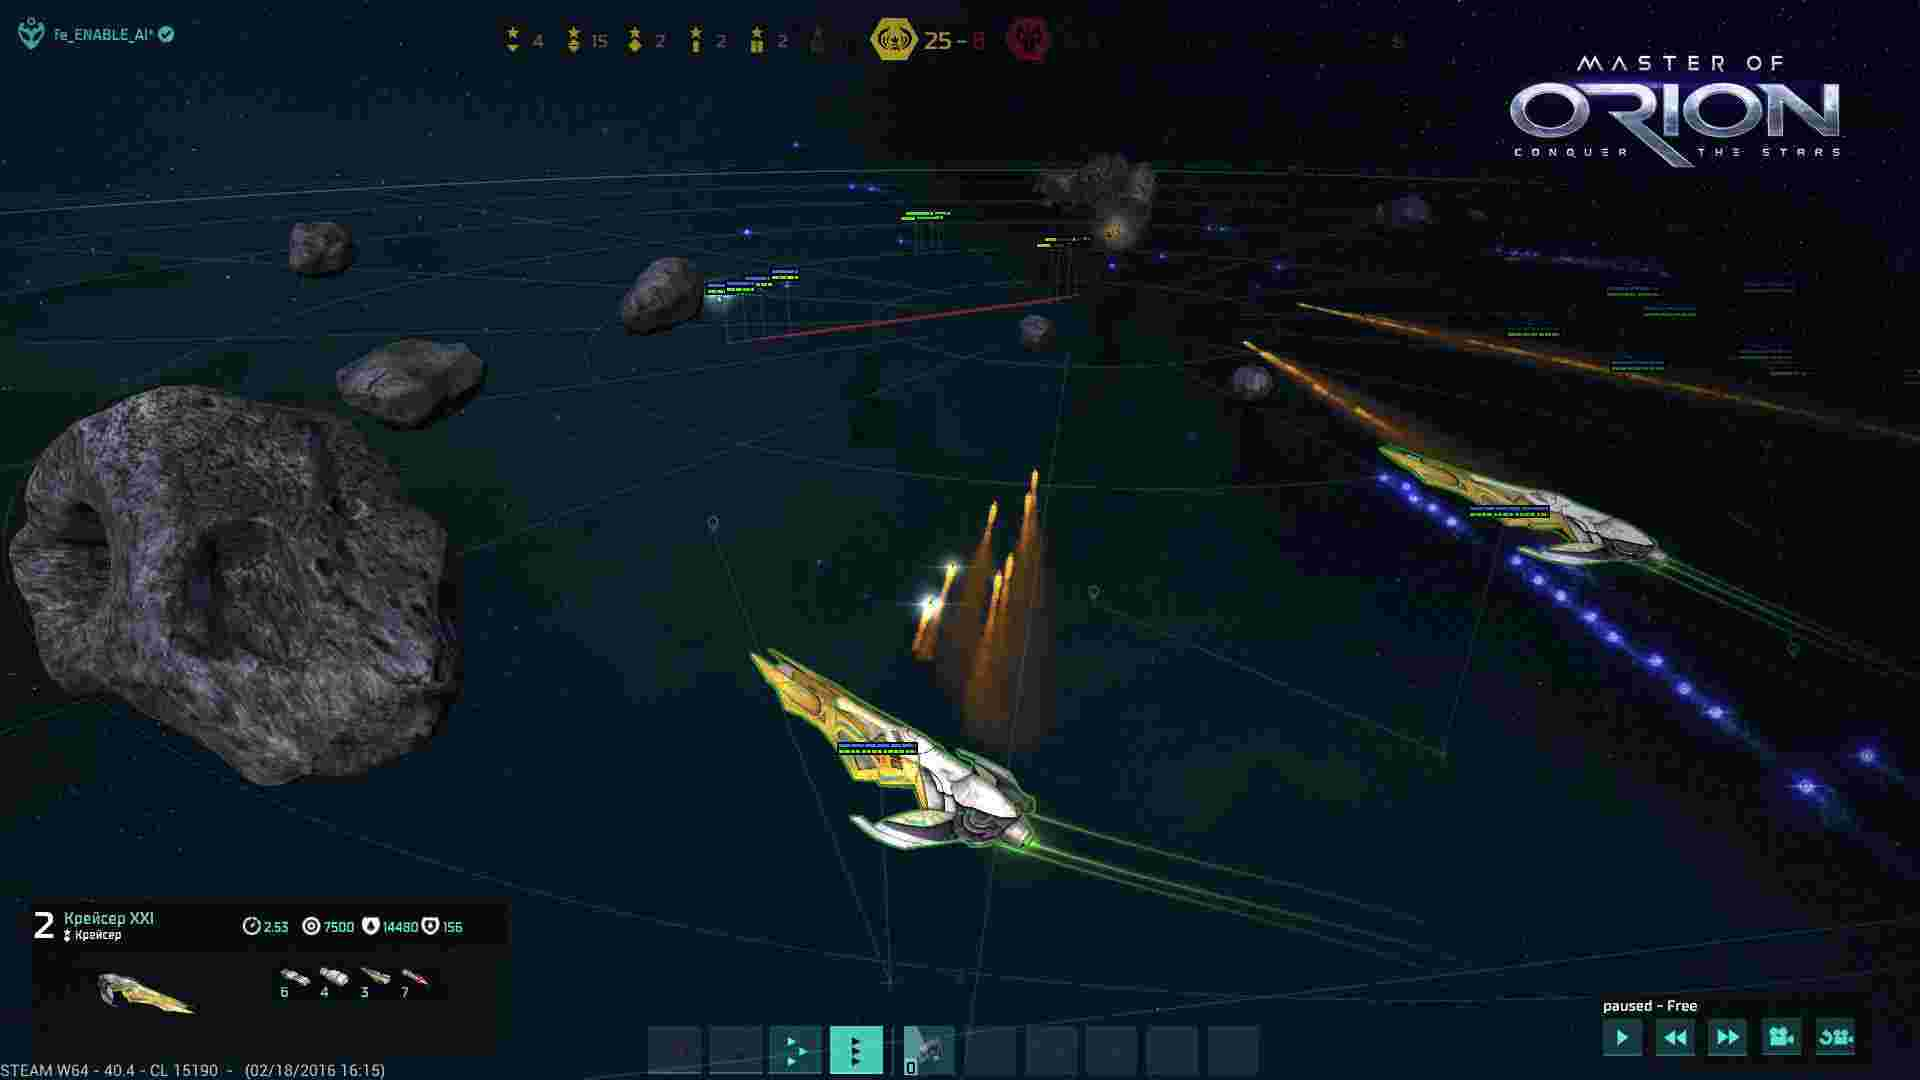 news.moo_screens_gameplay_early_access_image_04